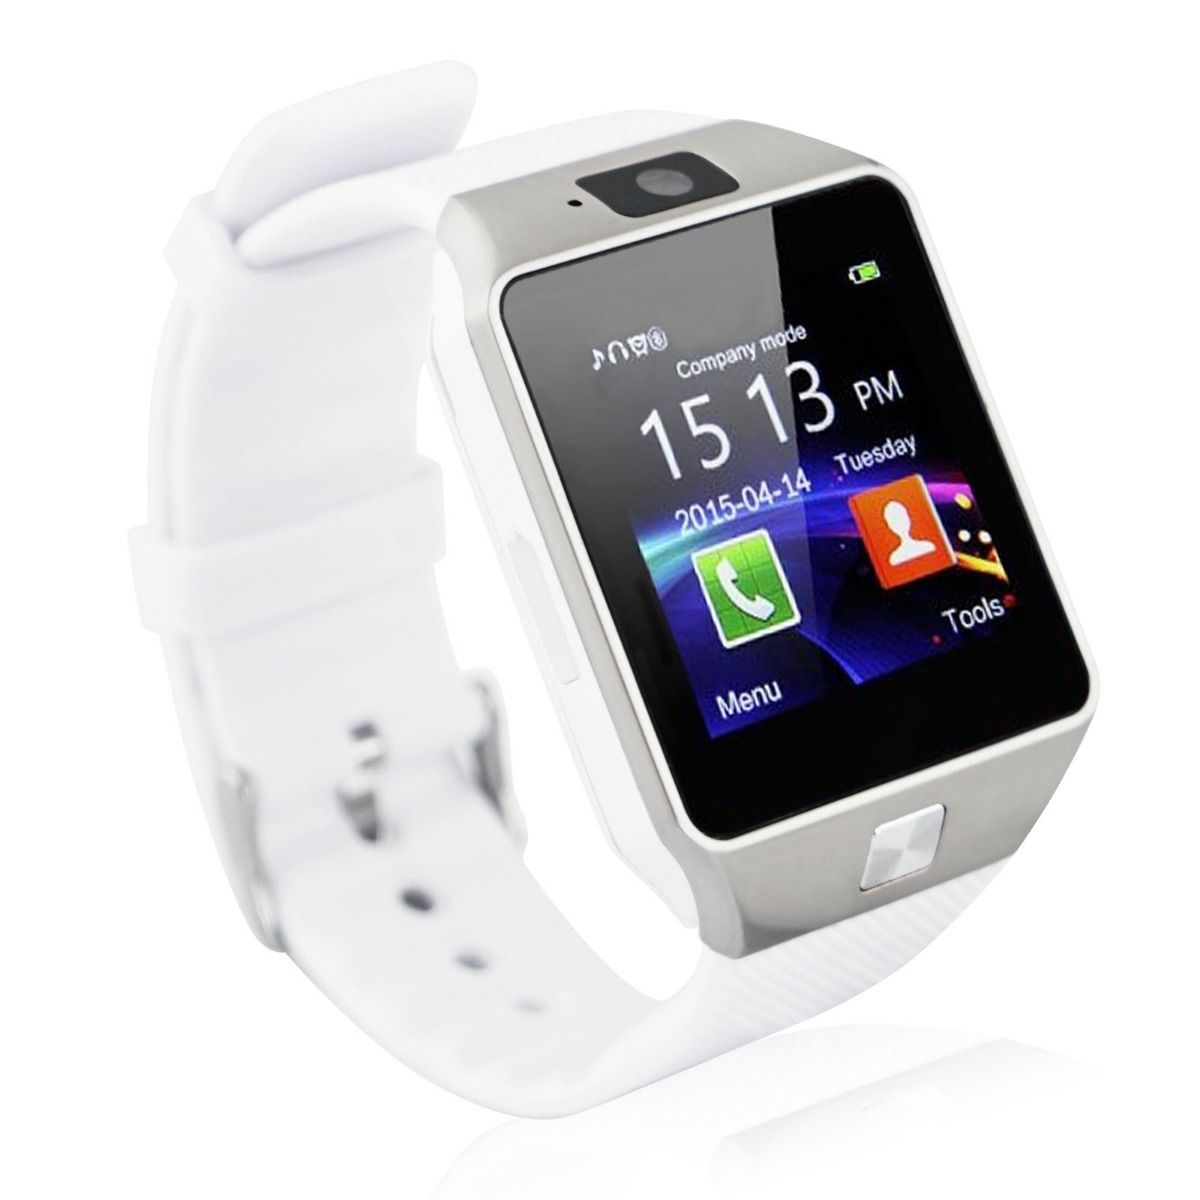 59a2d2997 Android Smartwatch DZ09 White Silver Price -Home Shopping